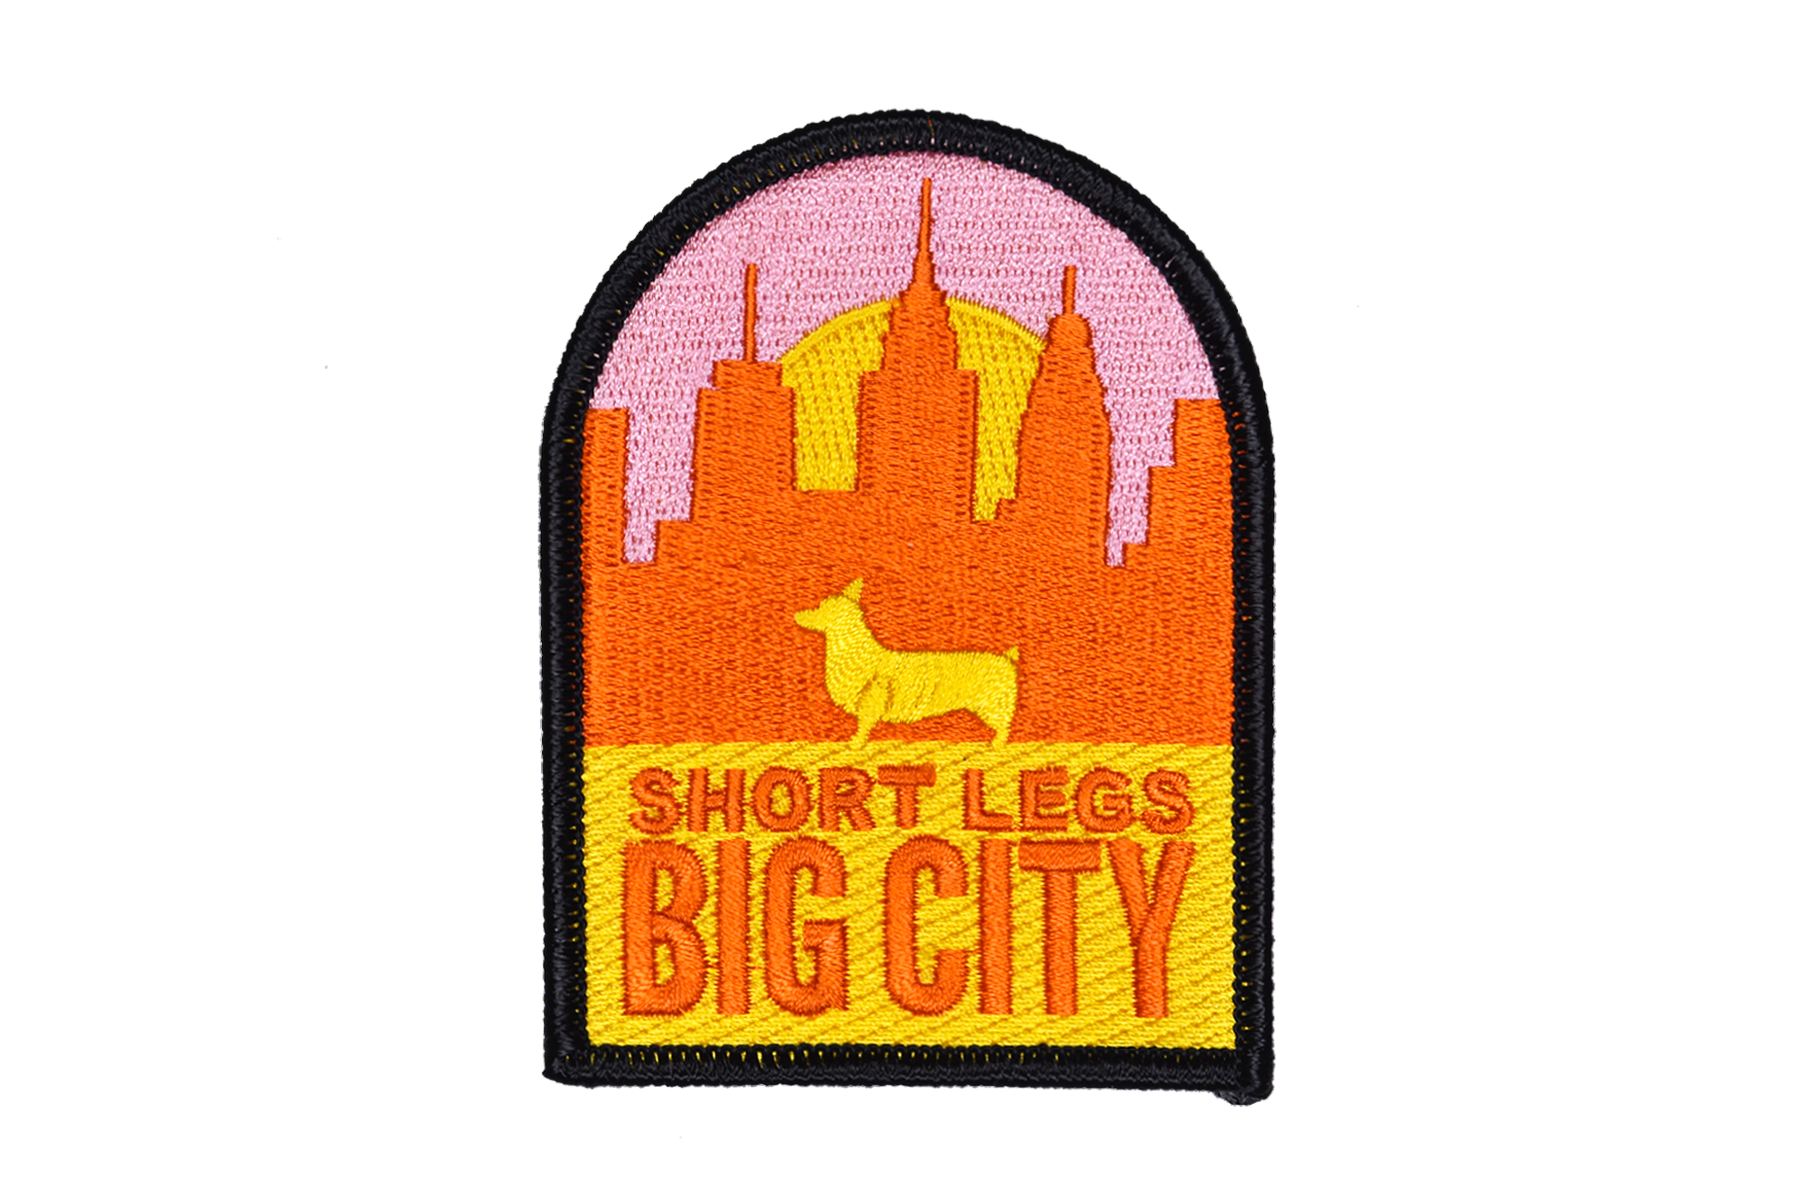 SHORT LEGS BIG CITY Embroidered Patch